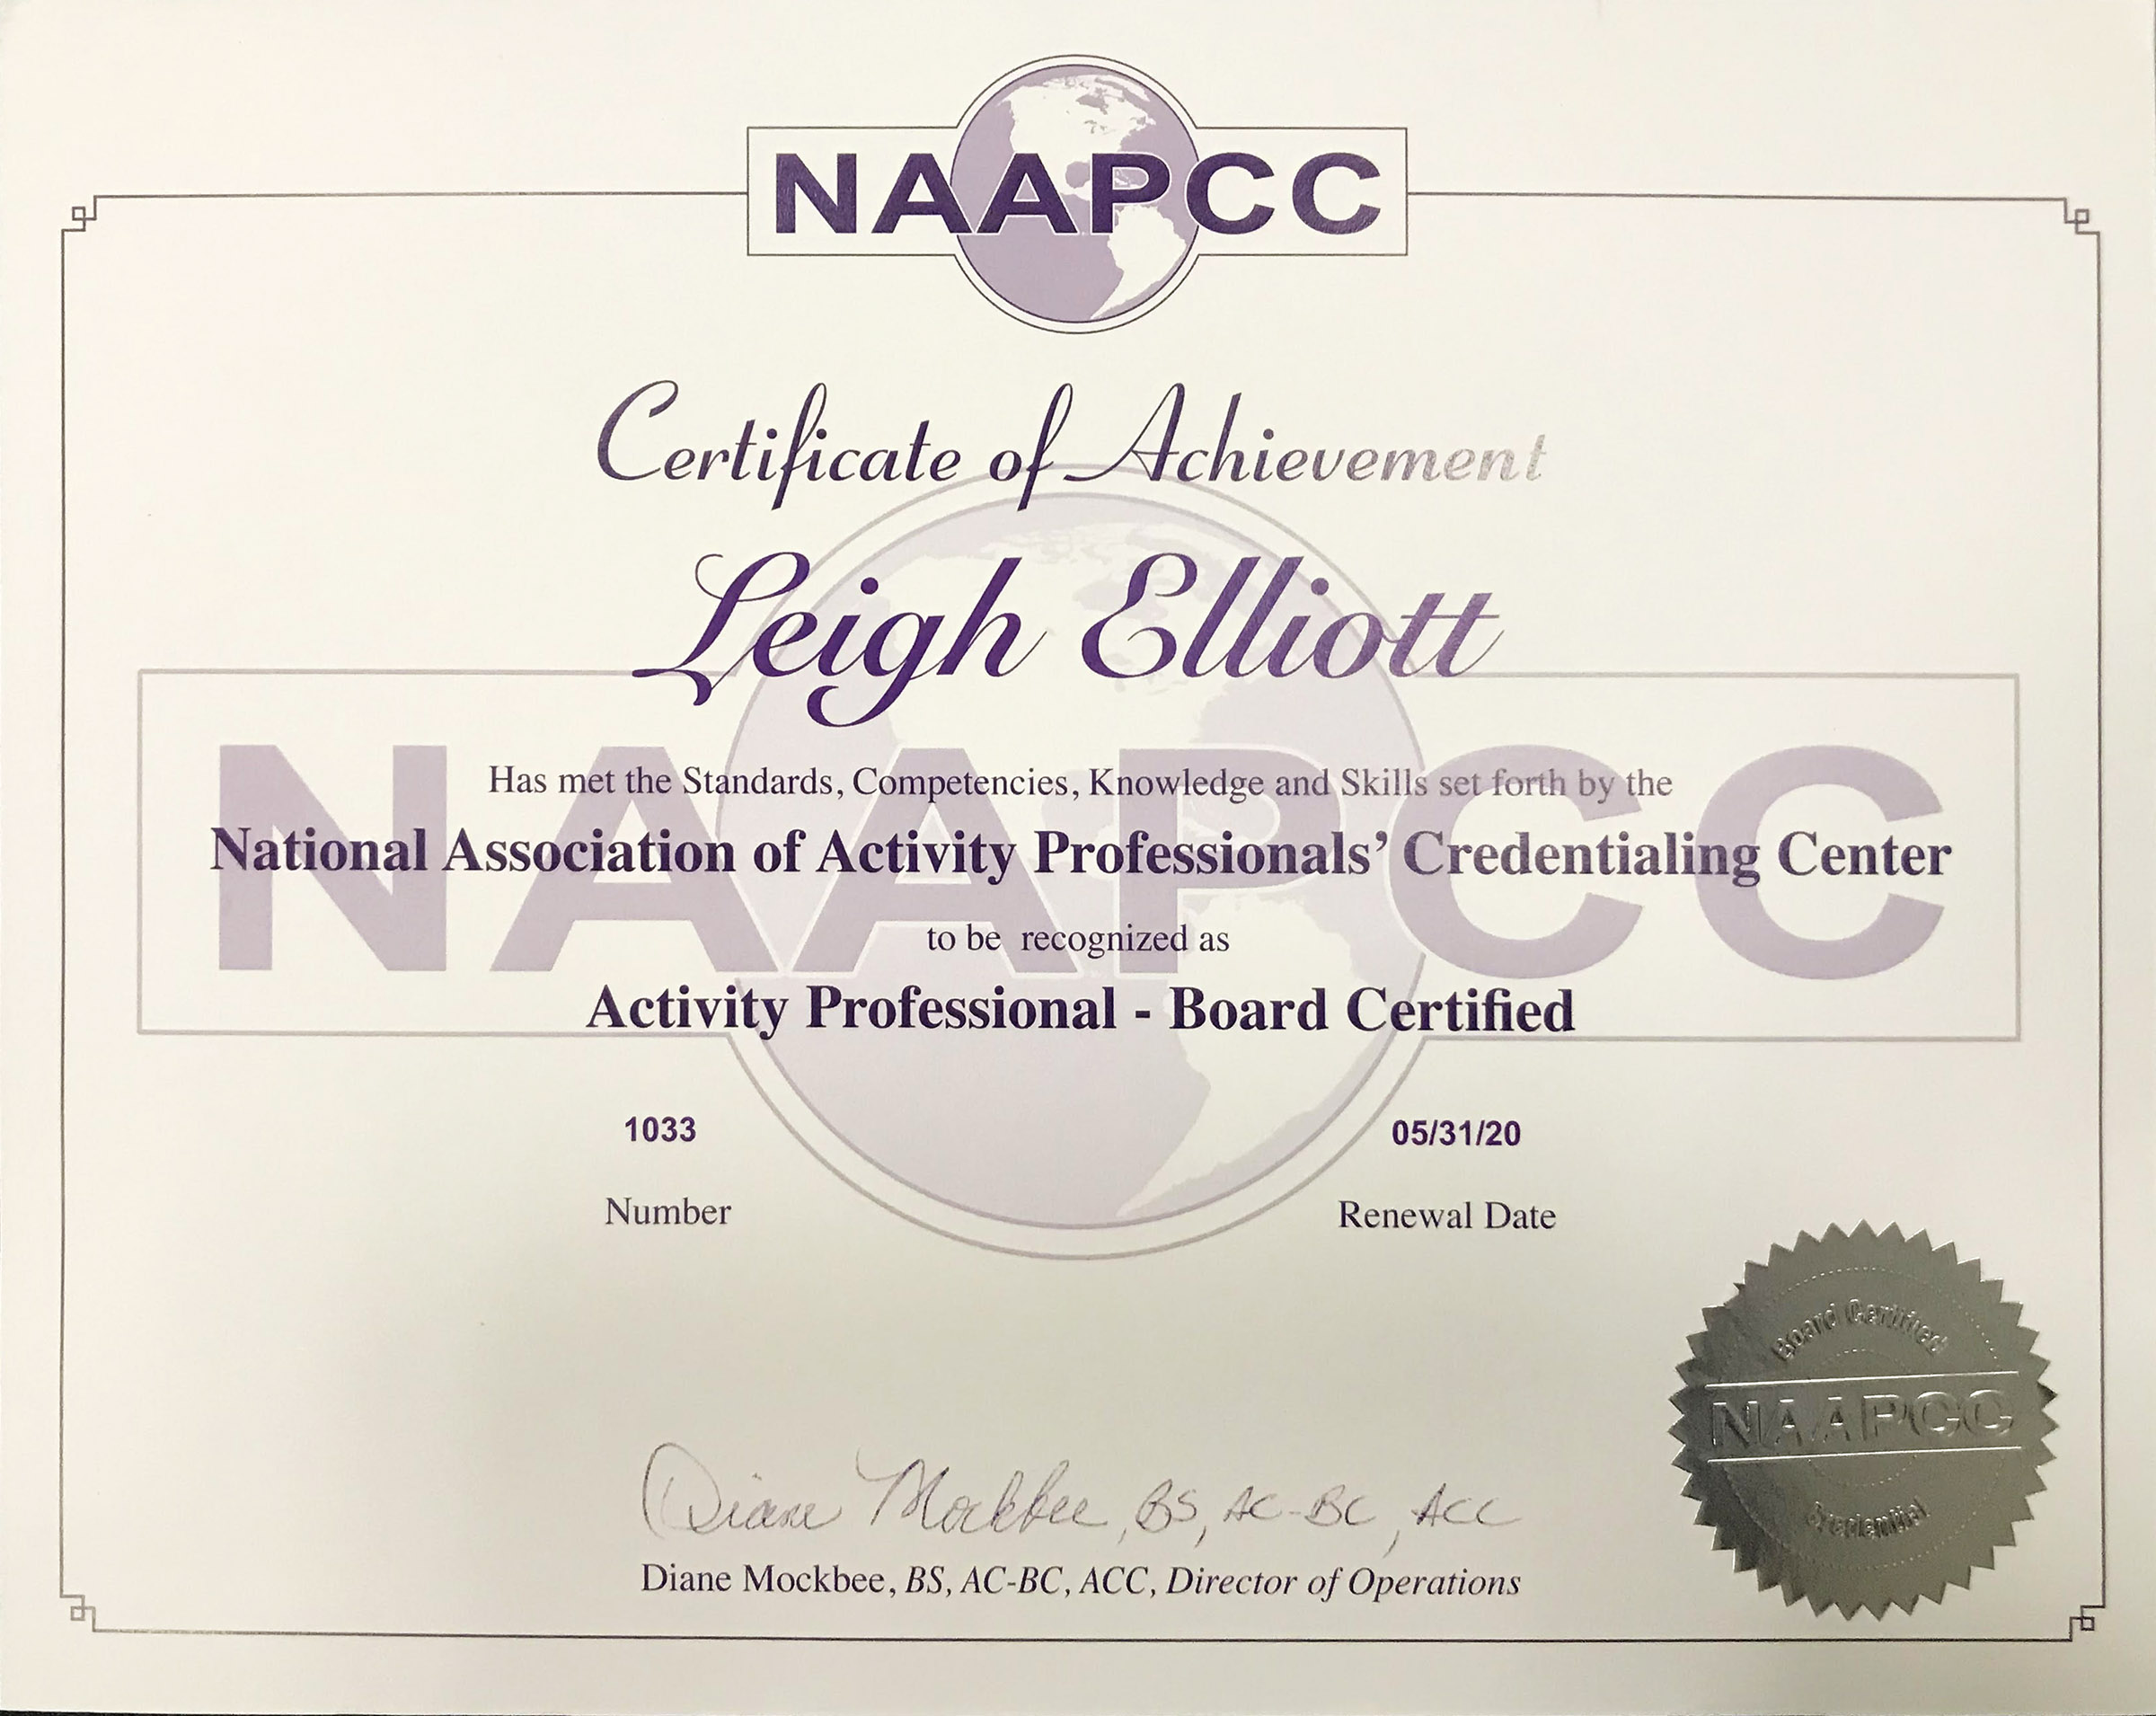 certificate activity completion credentialing certificates professionals association national center